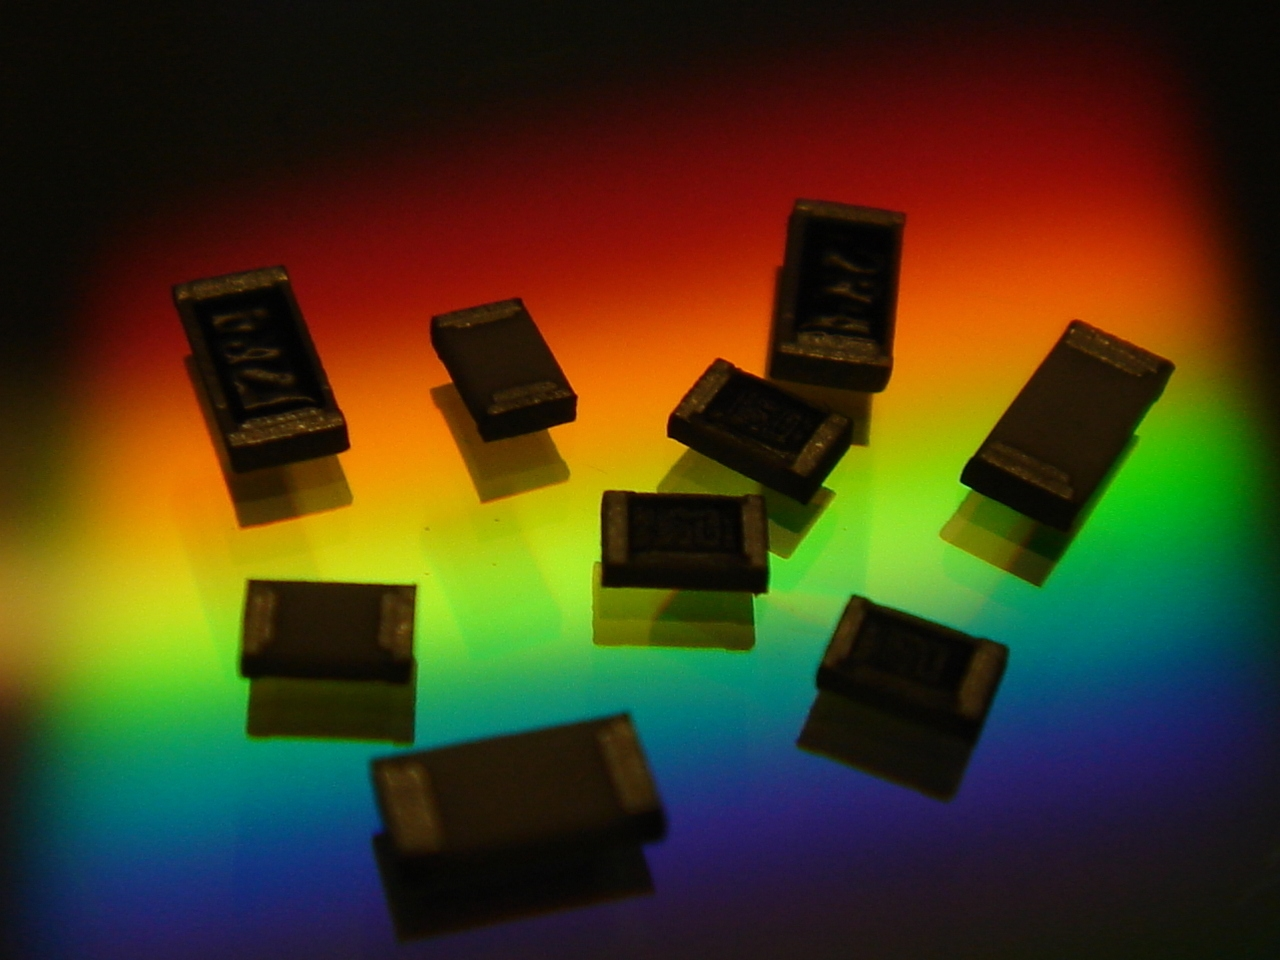 Pulse Withstanding Chip Resistor Boosts Power to 0.25W